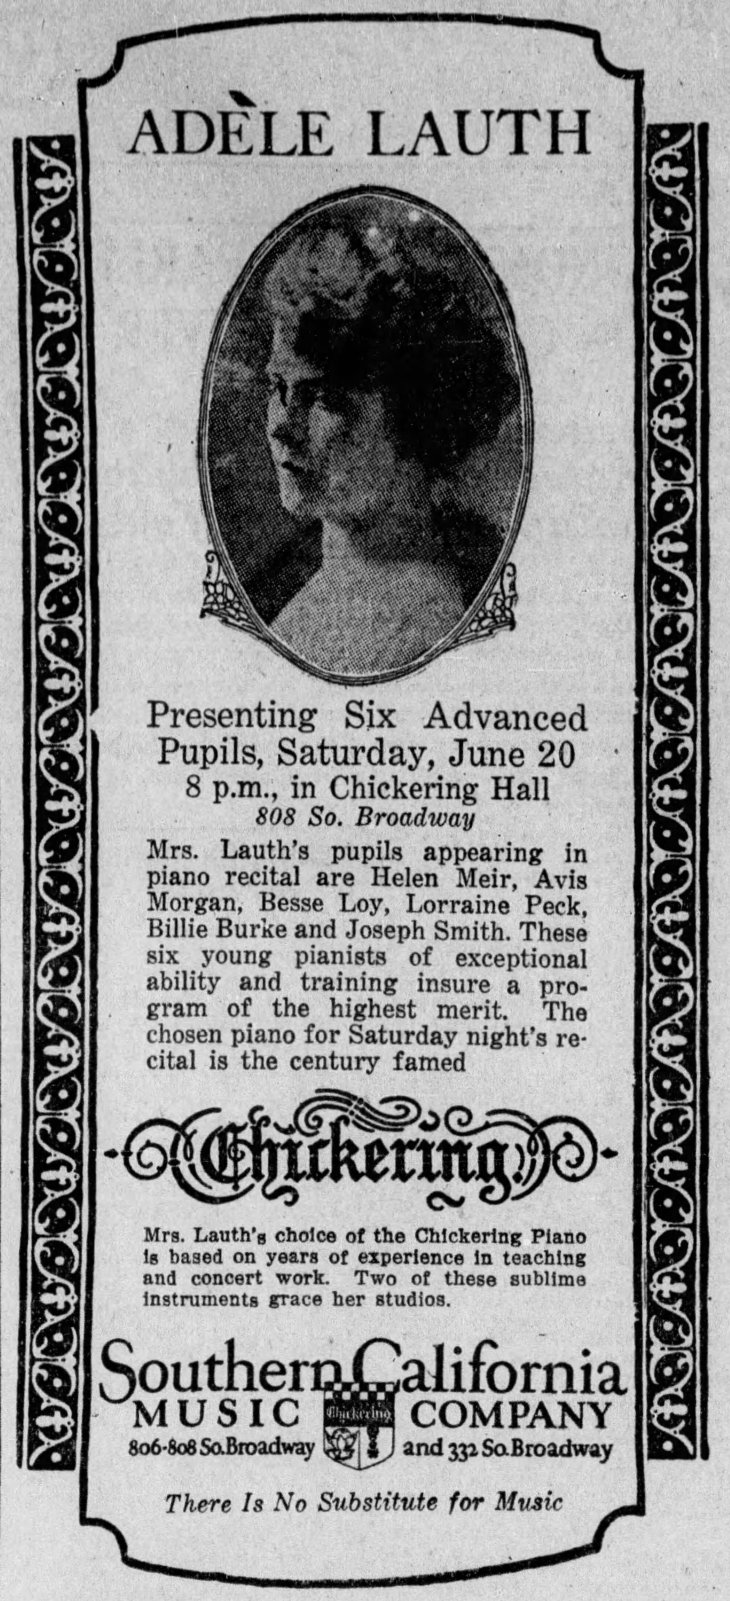 Adele Lauth music company ad The_Los_Angeles_Times_Wed__Jun_17__1925_